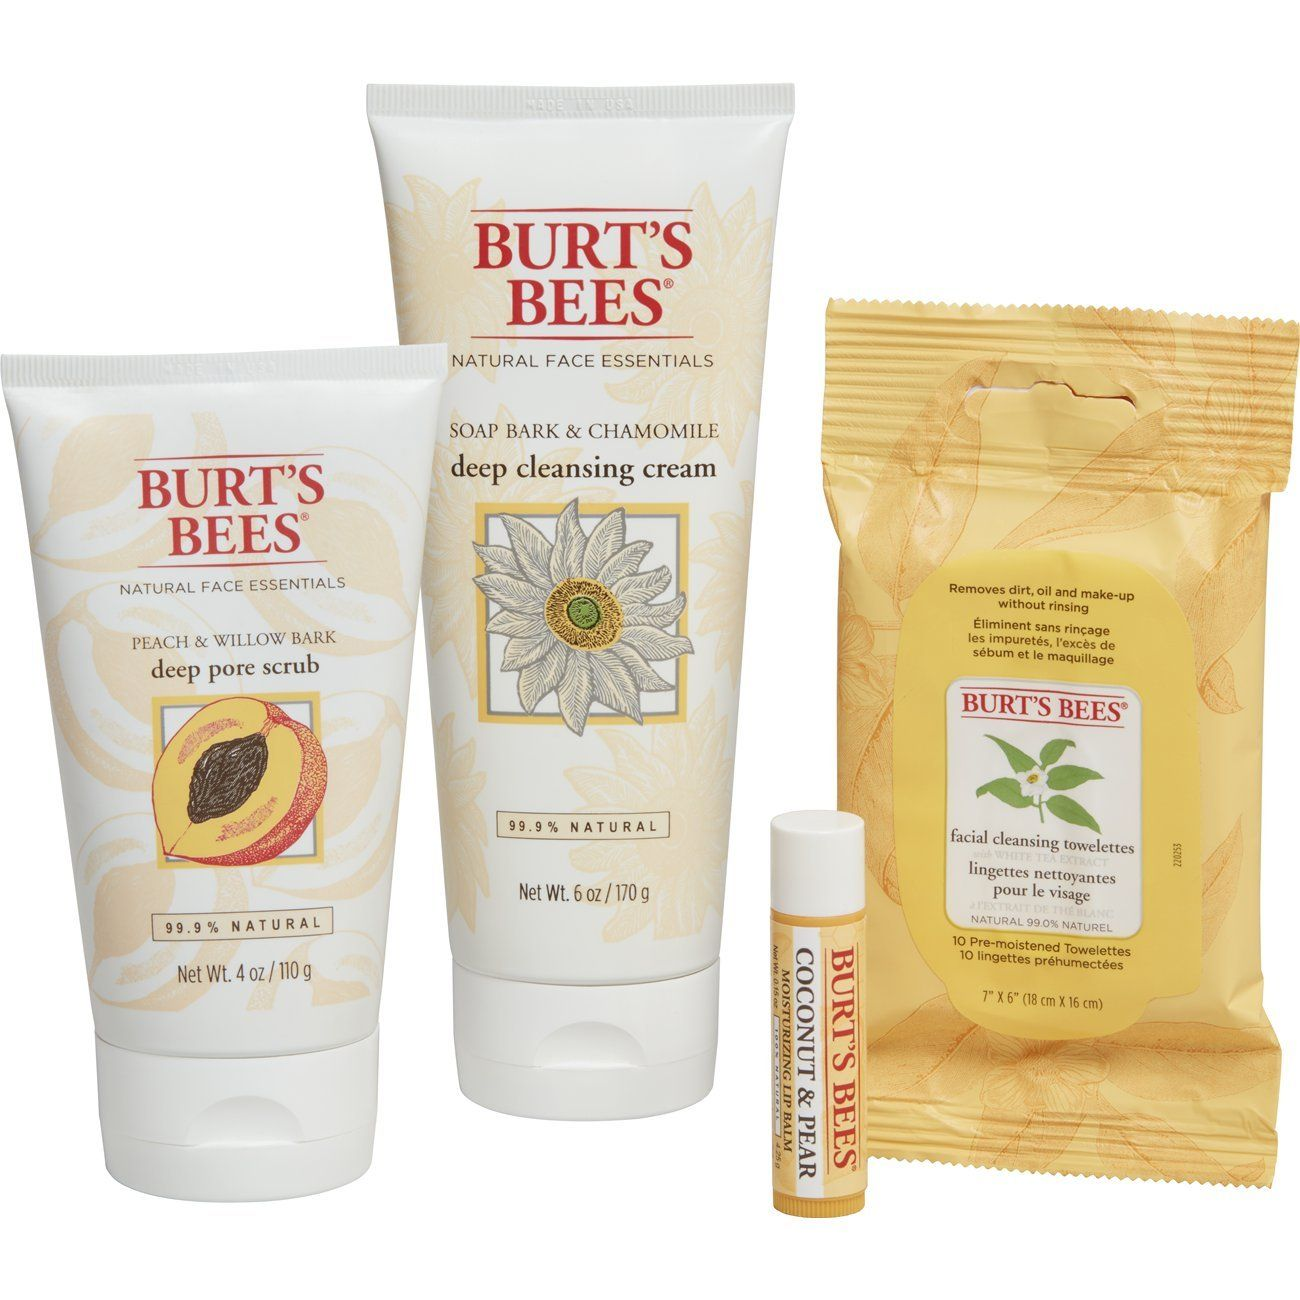 Burt S Bees Face Essentials Gift Set 4 Skin Care Products Cleansing Towelettes Deep Cleansing Cream Deep Pore Sc Burts Bees Face Skin Care Women Skin Care